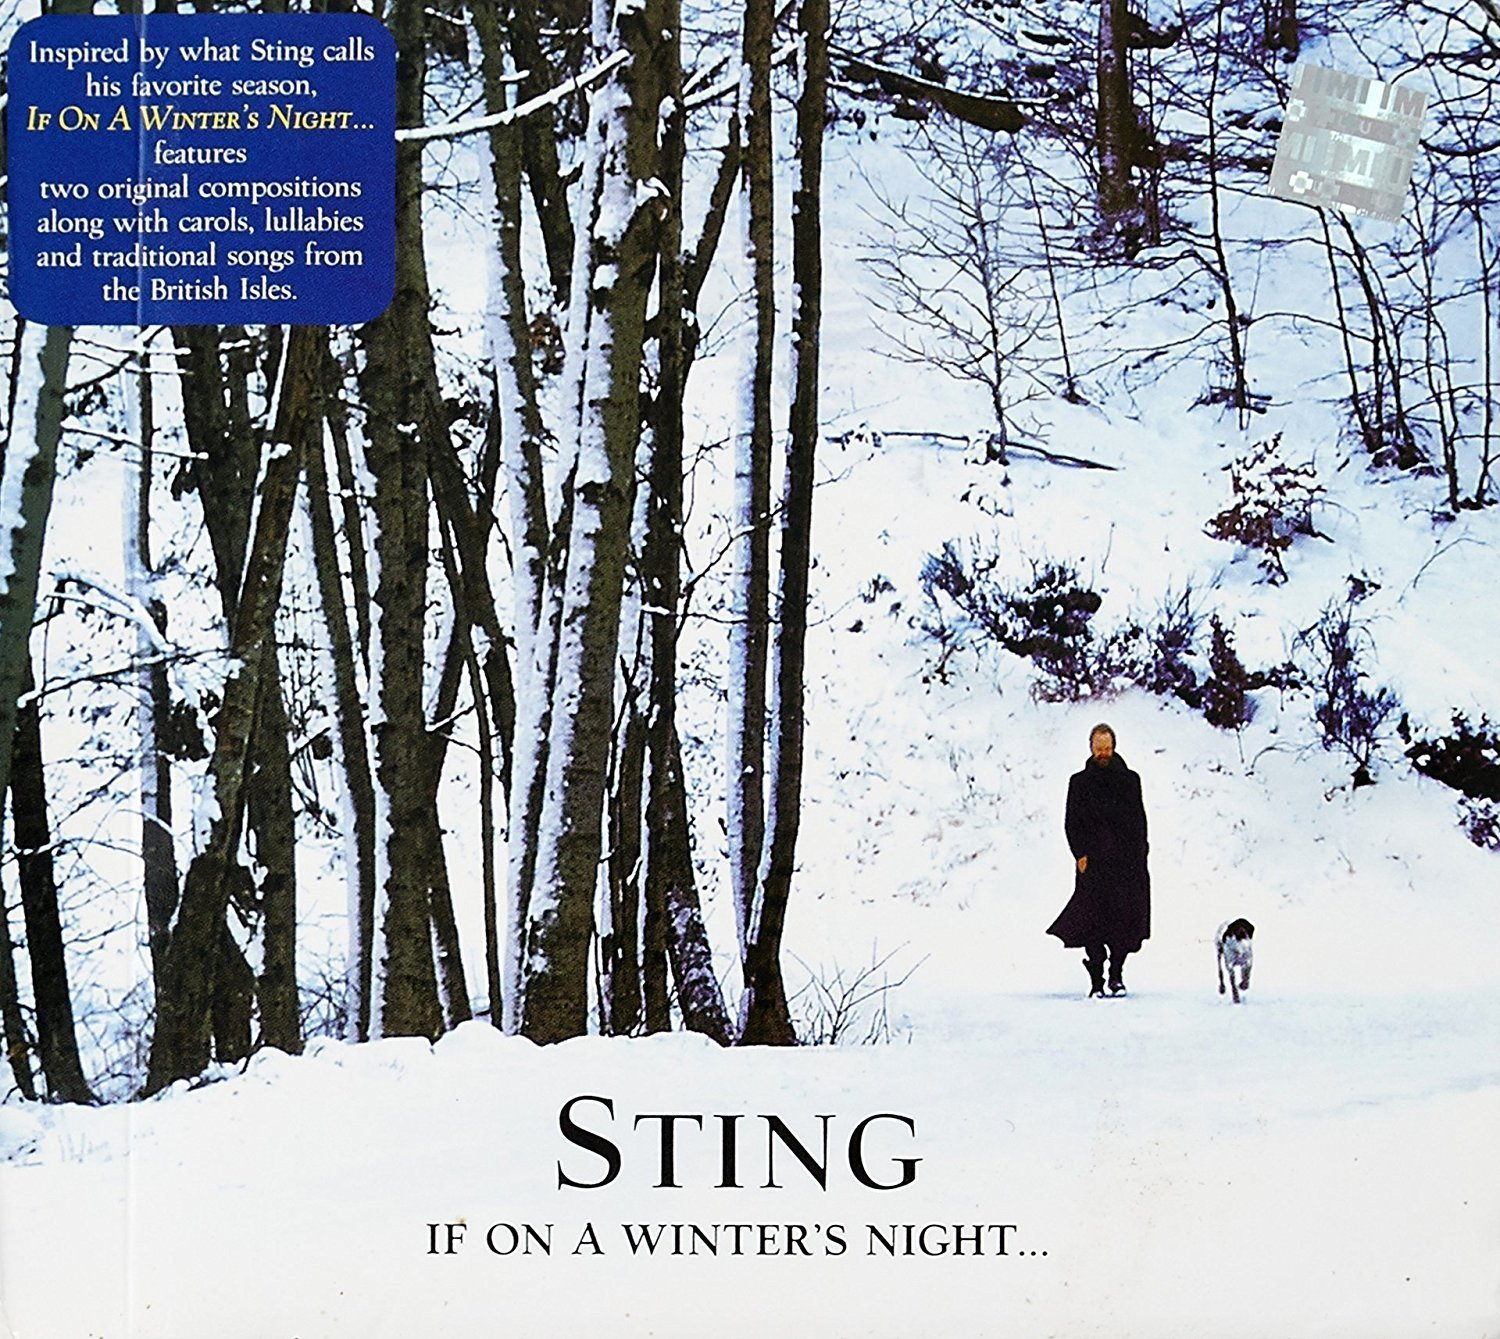 """If on a Winter's Night"" by Sting from Amazon for $11.23  Photo 9 of 12 in An Expert's Guide to a Bavarian-Coloradan Holiday"